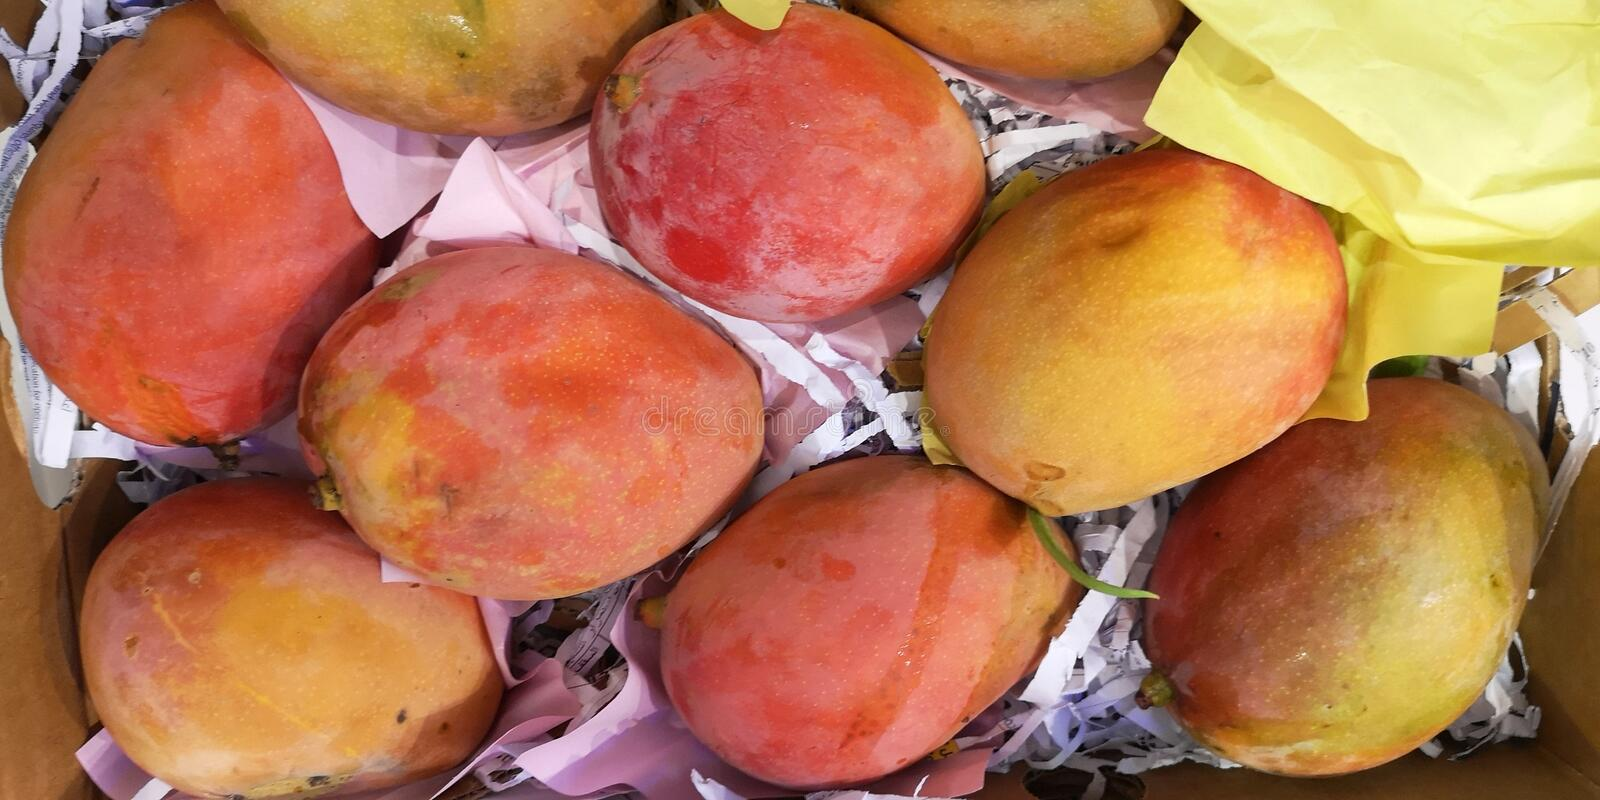 Mango fresh love to eat  this kind of looks sweet stock photo